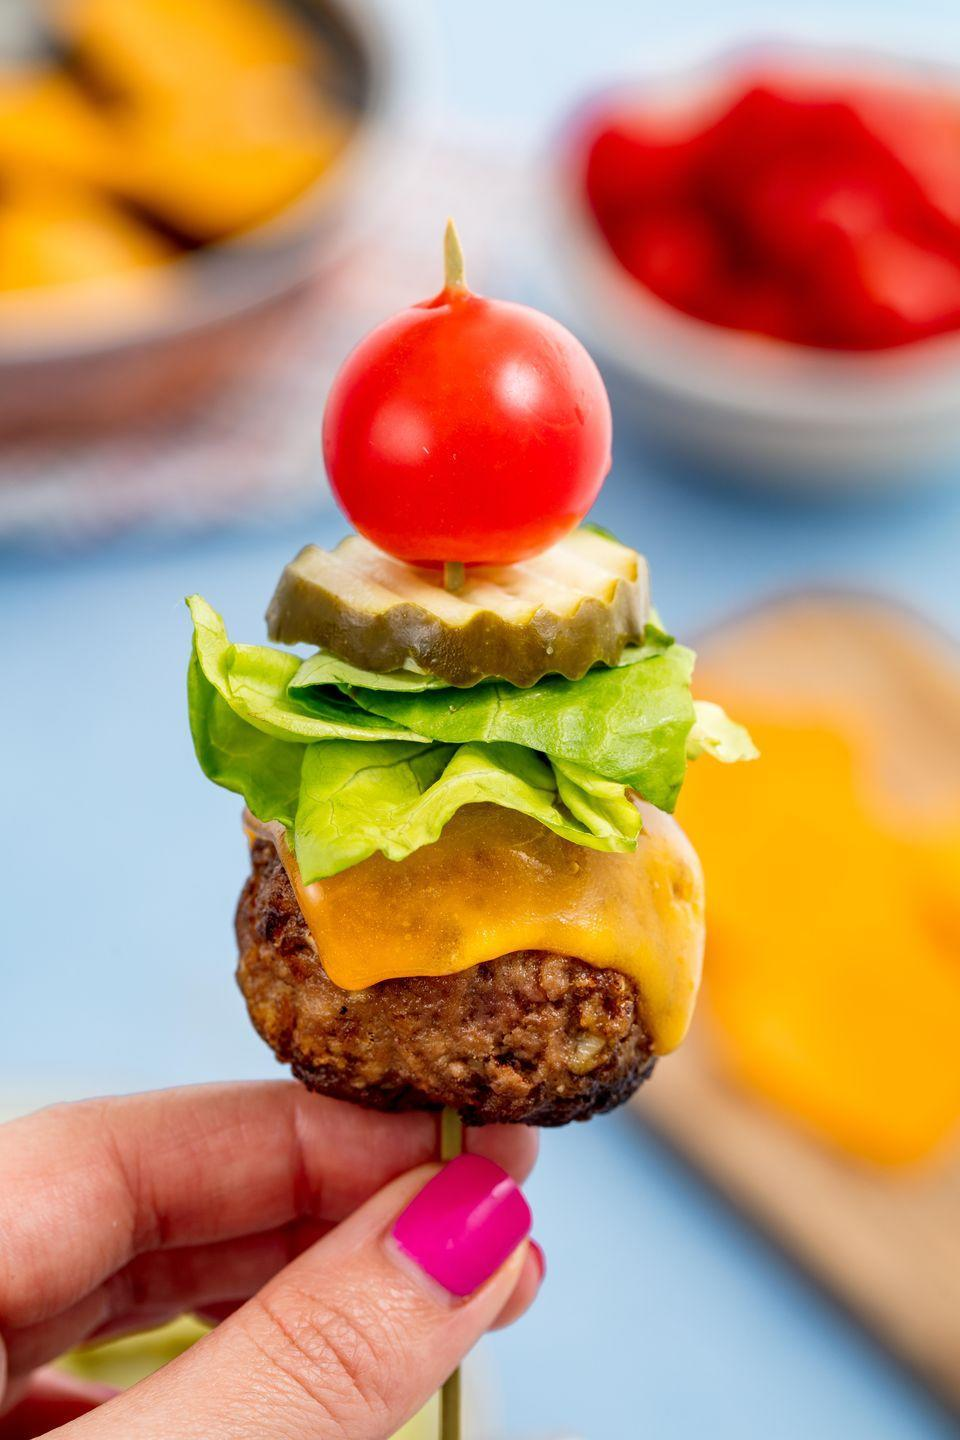 """<p>Sliders, who?</p><p>Get the recipe from <a href=""""https://www.delish.com/cooking/recipe-ideas/a47984/cheeseburger-skewers-bunless-burgers-recipe/"""" rel=""""nofollow noopener"""" target=""""_blank"""" data-ylk=""""slk:Delish"""" class=""""link rapid-noclick-resp"""">Delish</a>.</p>"""